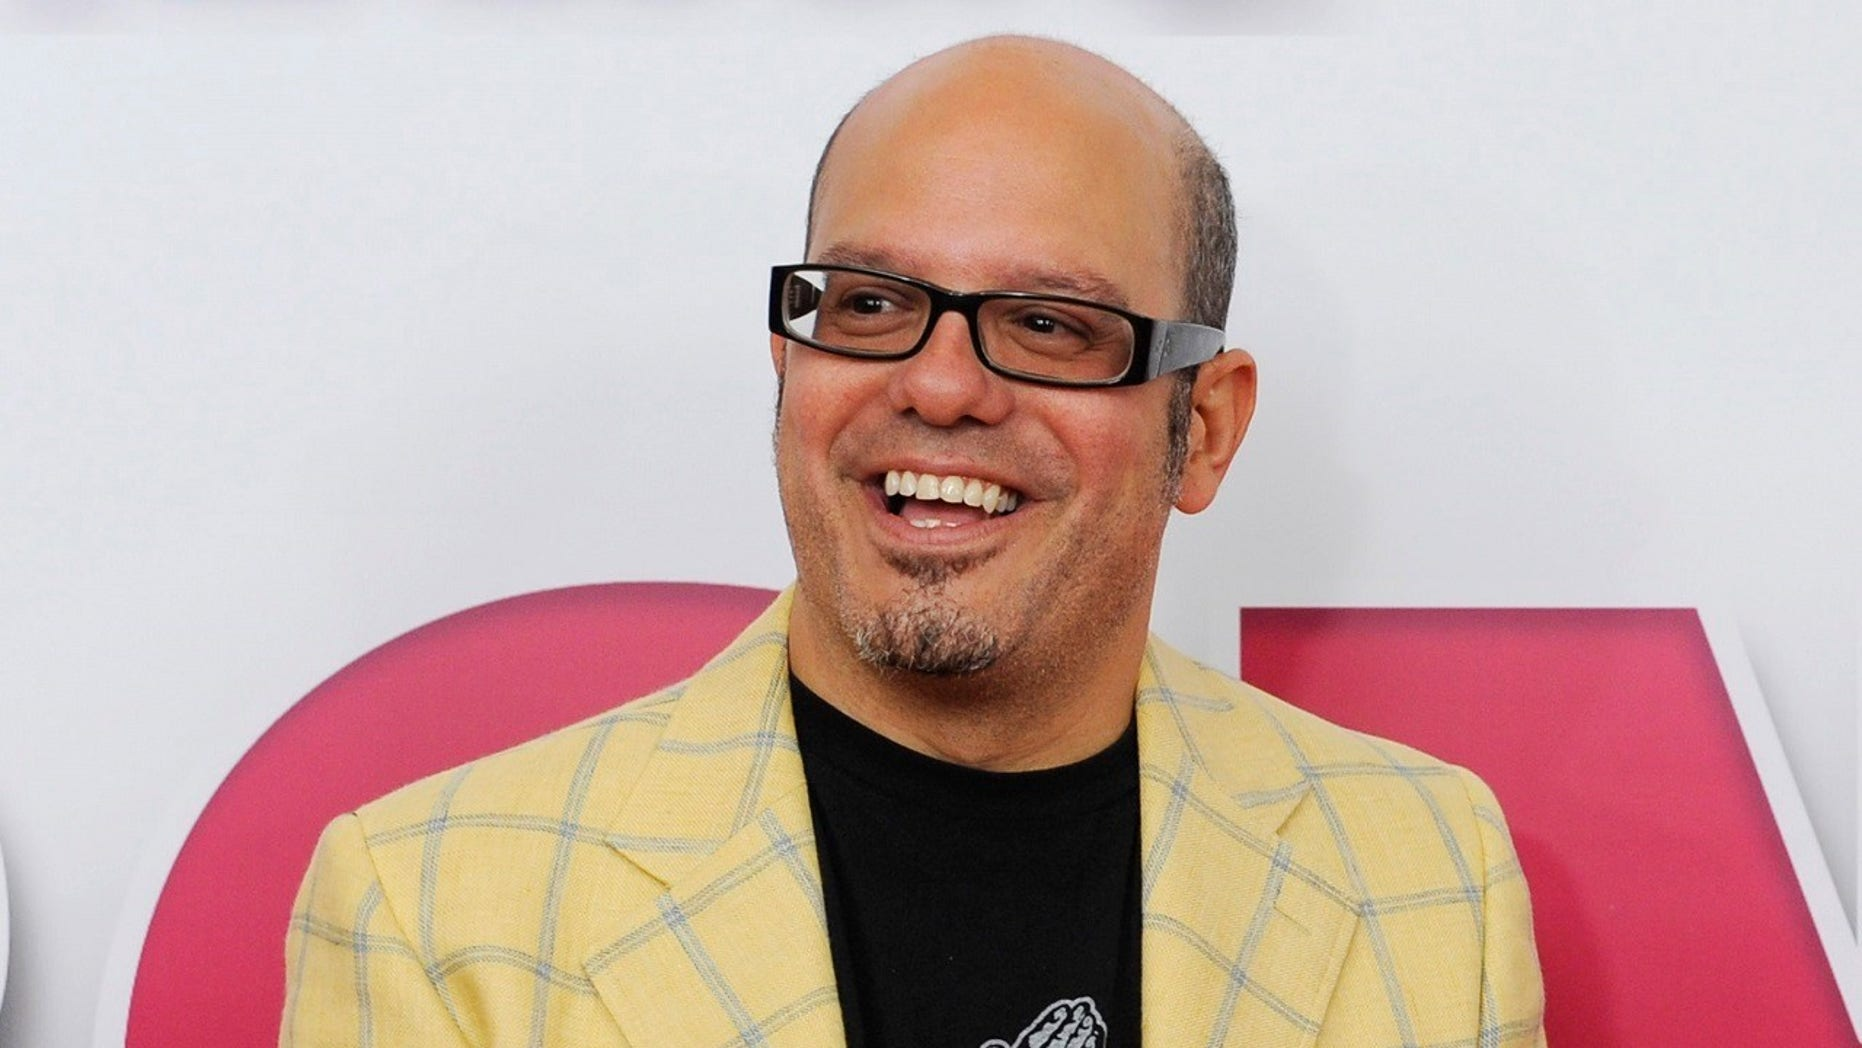 David Cross said on Tuesday he didn't remember making alleged racist joke to actress Charlyne Yi a decade ago when they met.